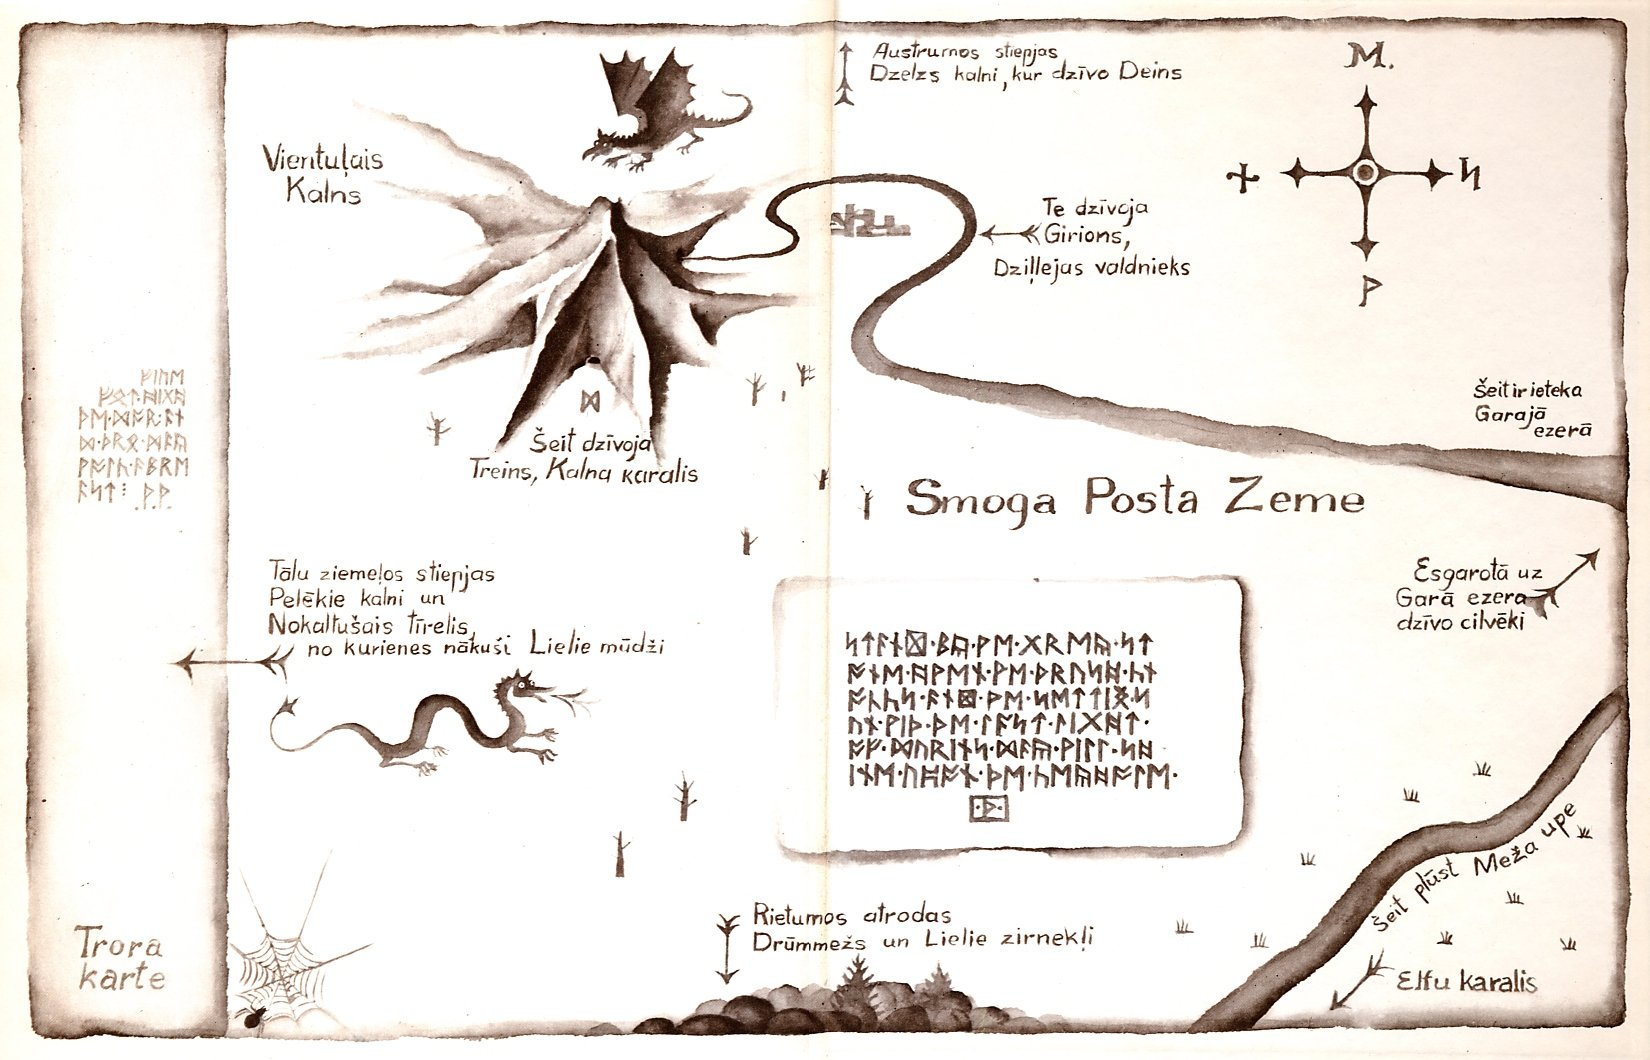 Maps from the Hobbit : image 13 of 24